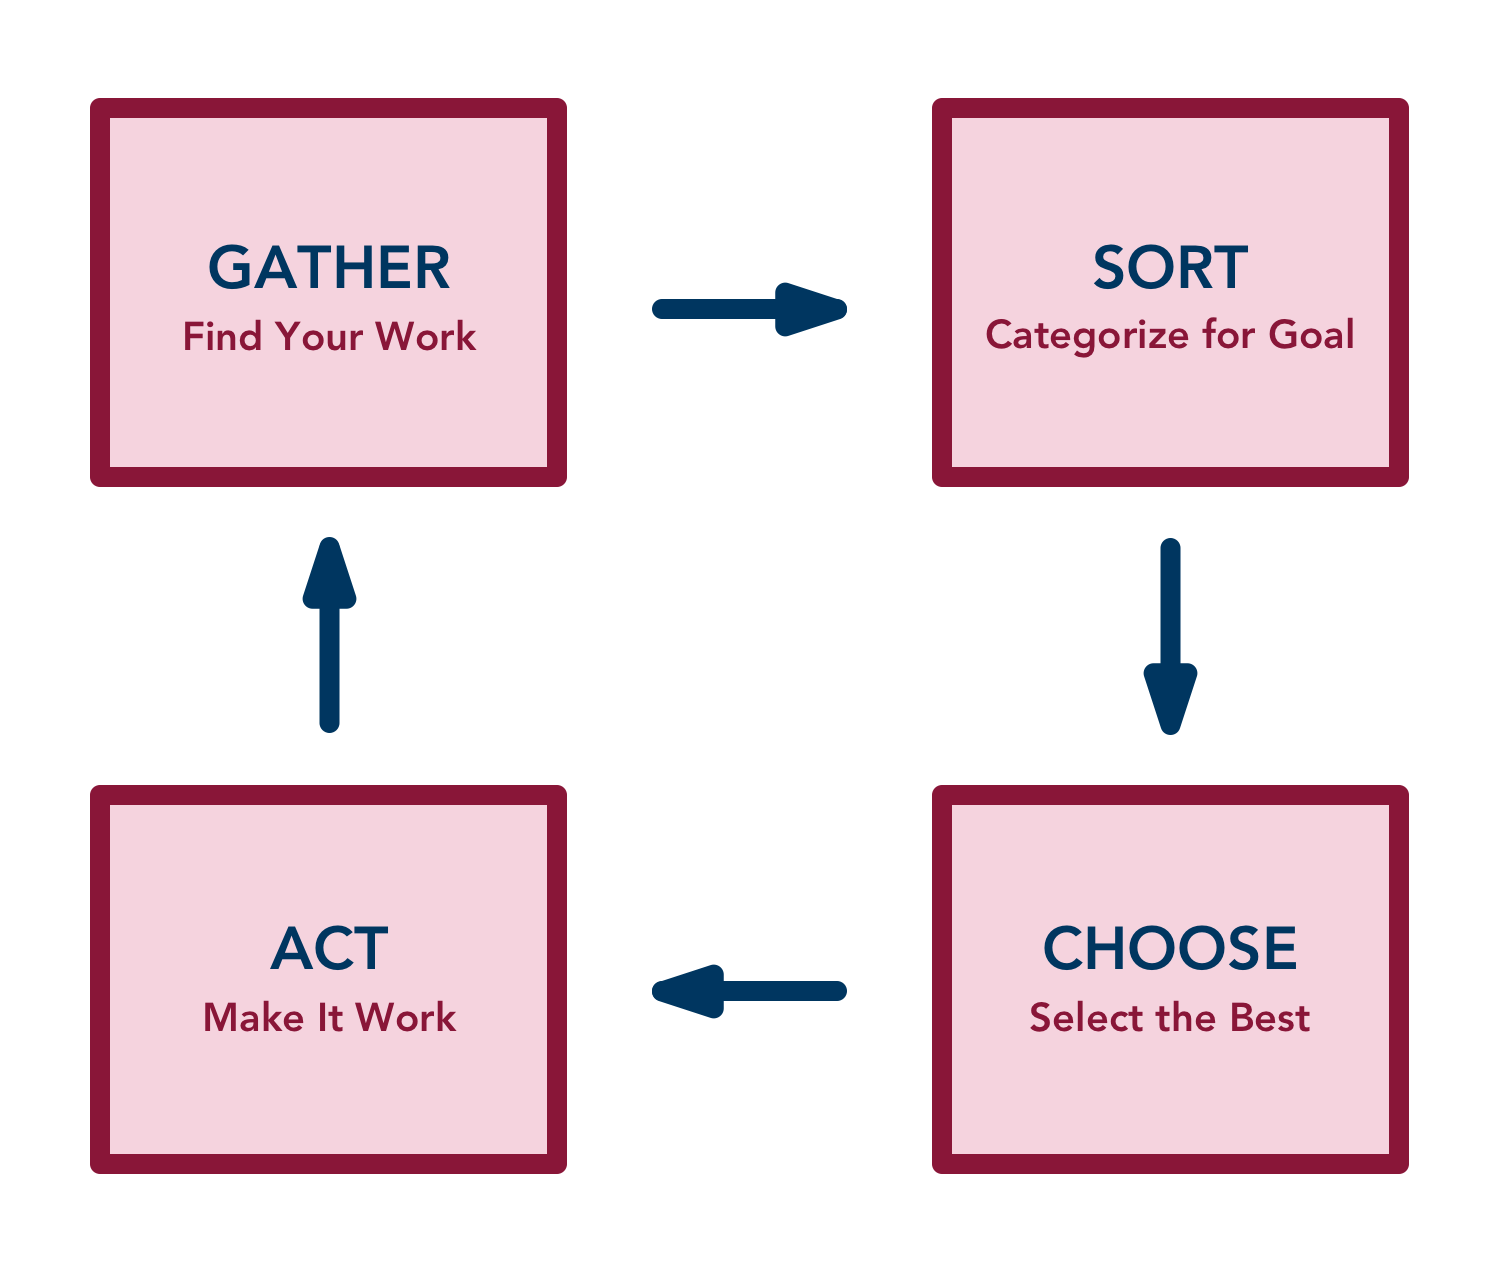 Gather (Find Your Work) > Sort (Categorize for Goal) > Choose (Select the Best) > Act (Make It Work)